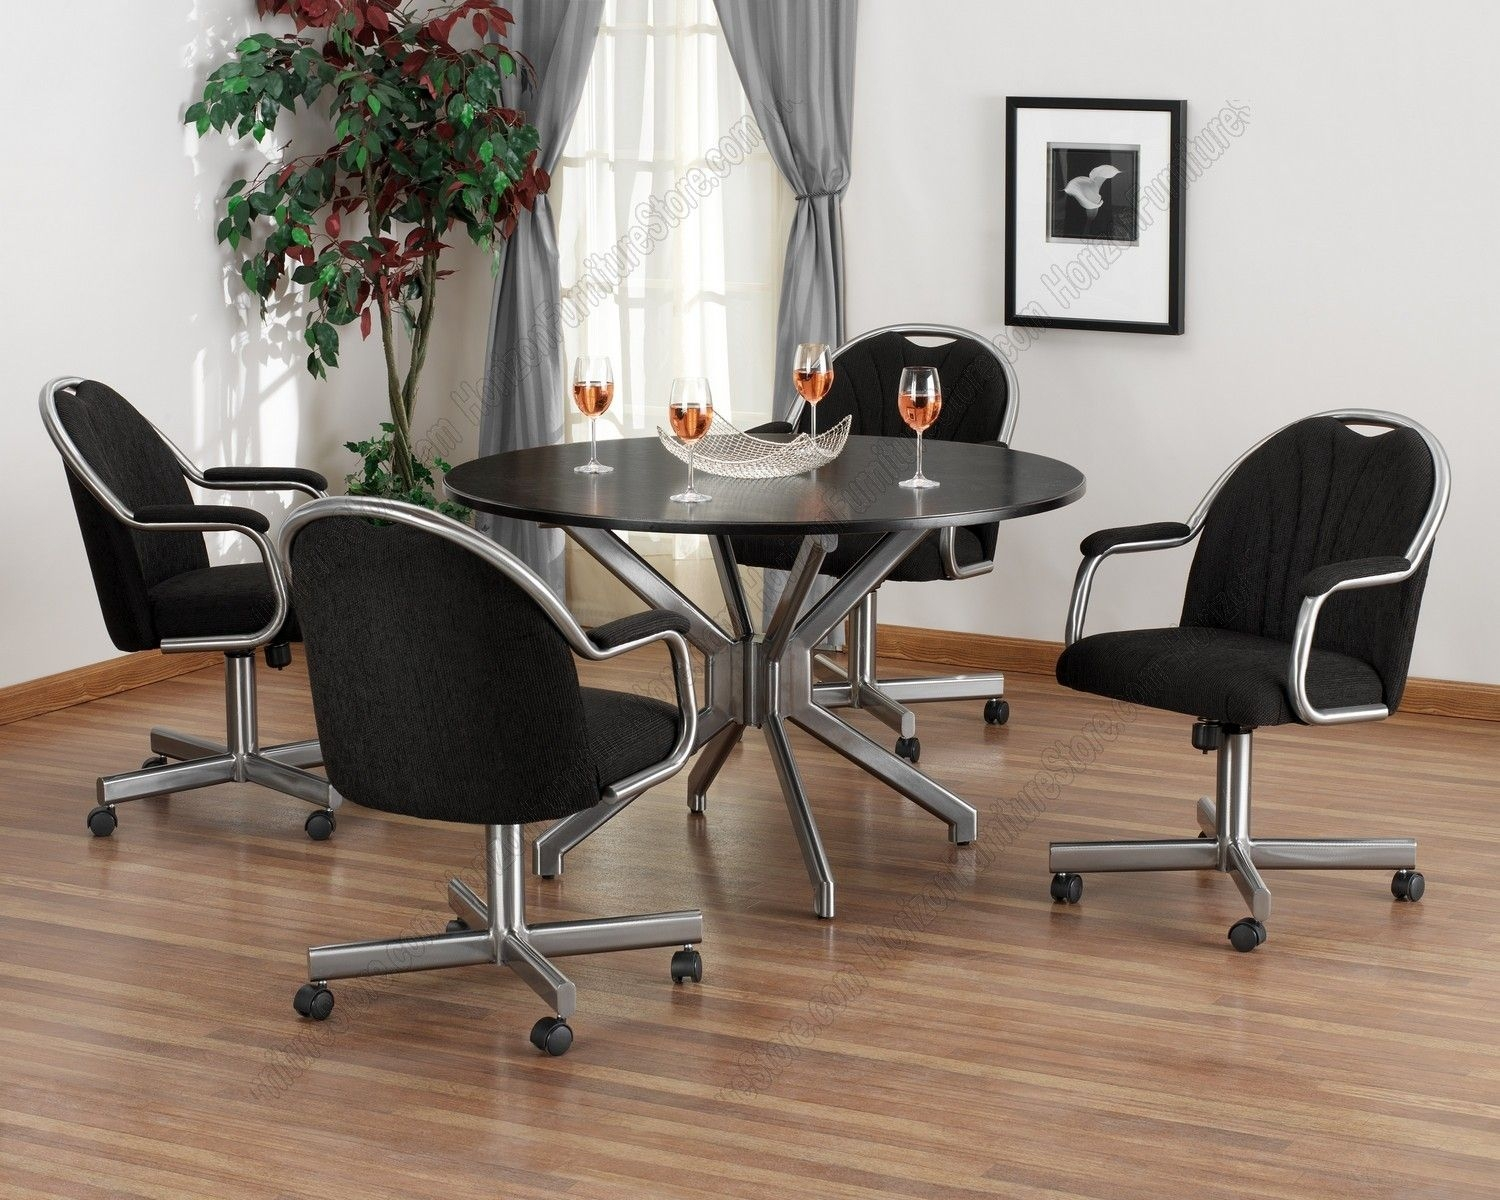 Dining Room Chairs With Rollers Dining Room Table With .